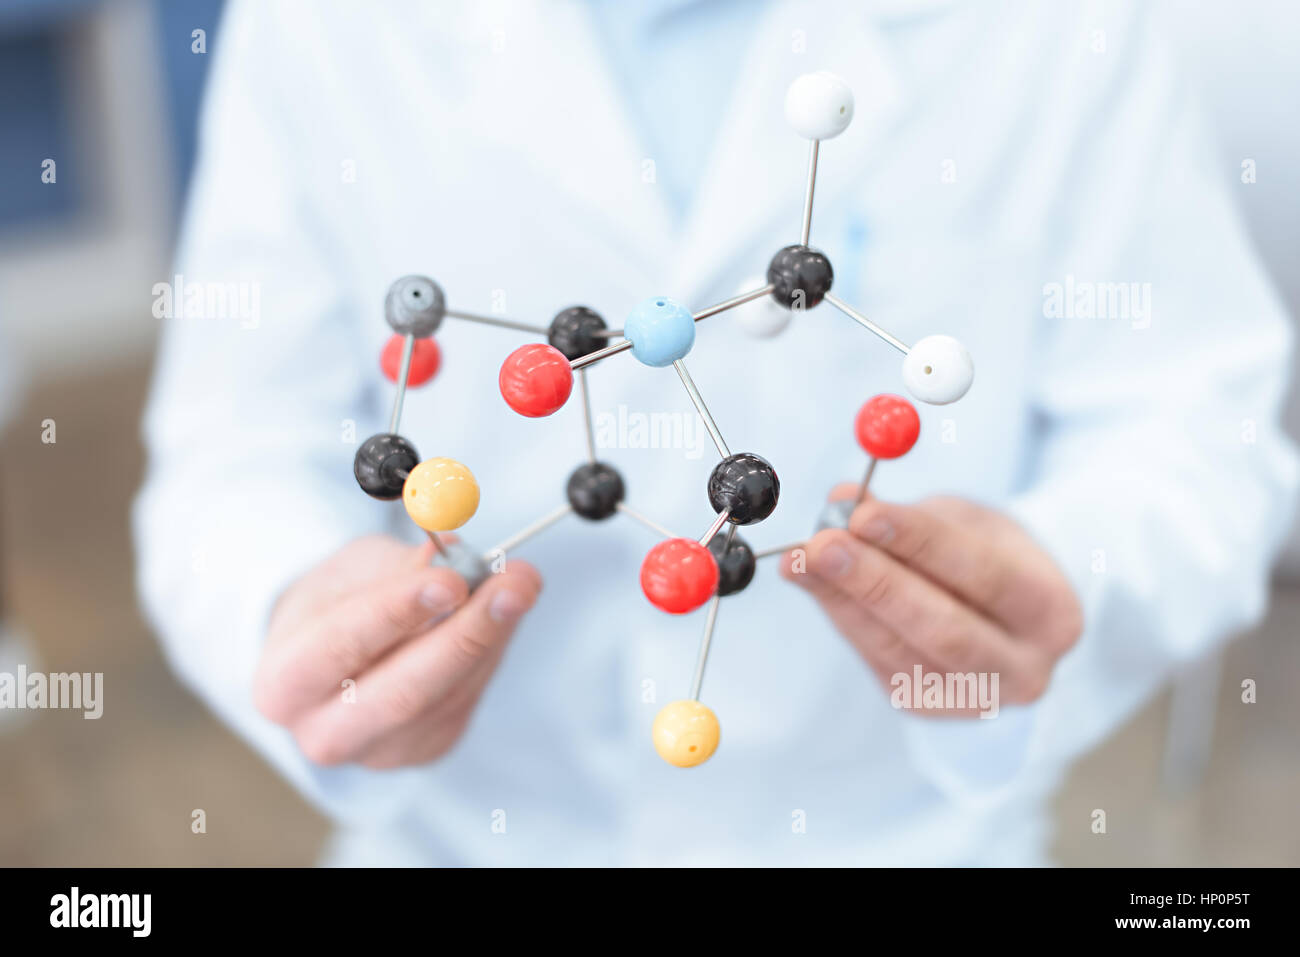 scientist in white coat holding molecular model Stock Photo